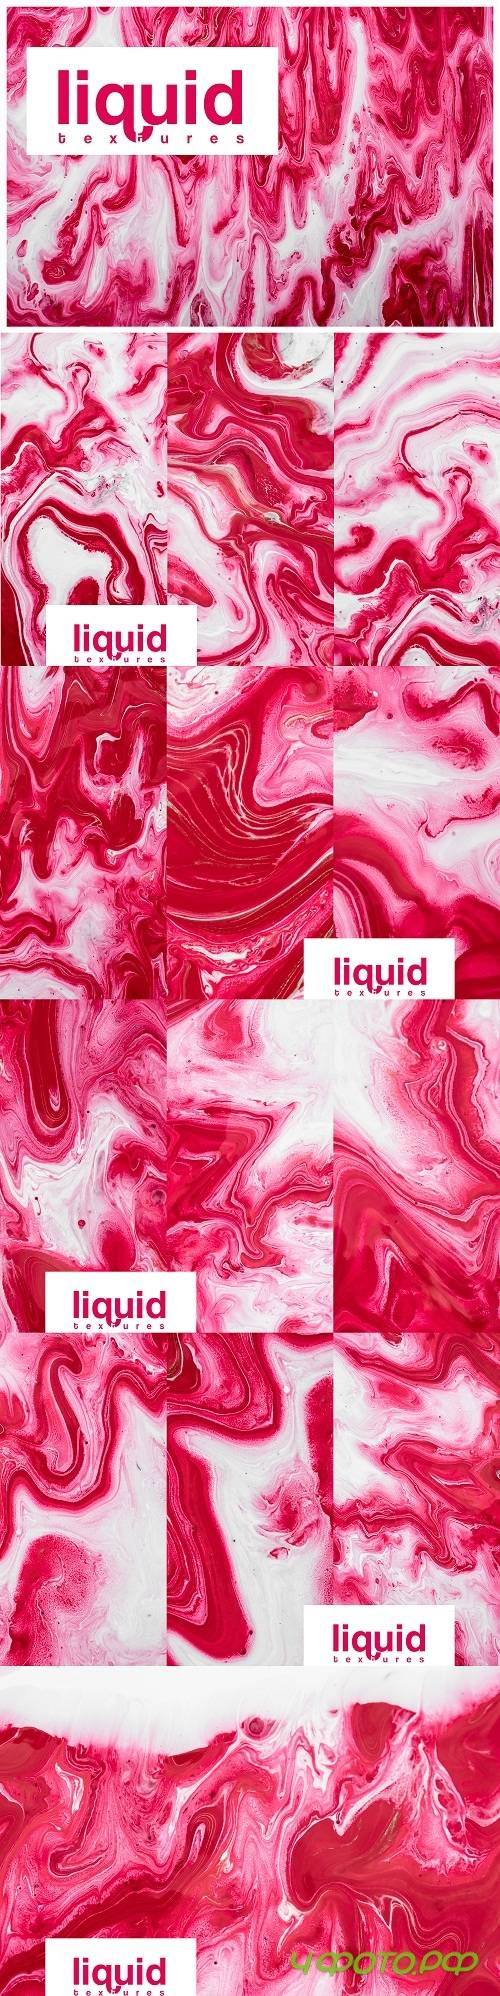 Liquid marble ink textures watercolor vol2 background - 239830